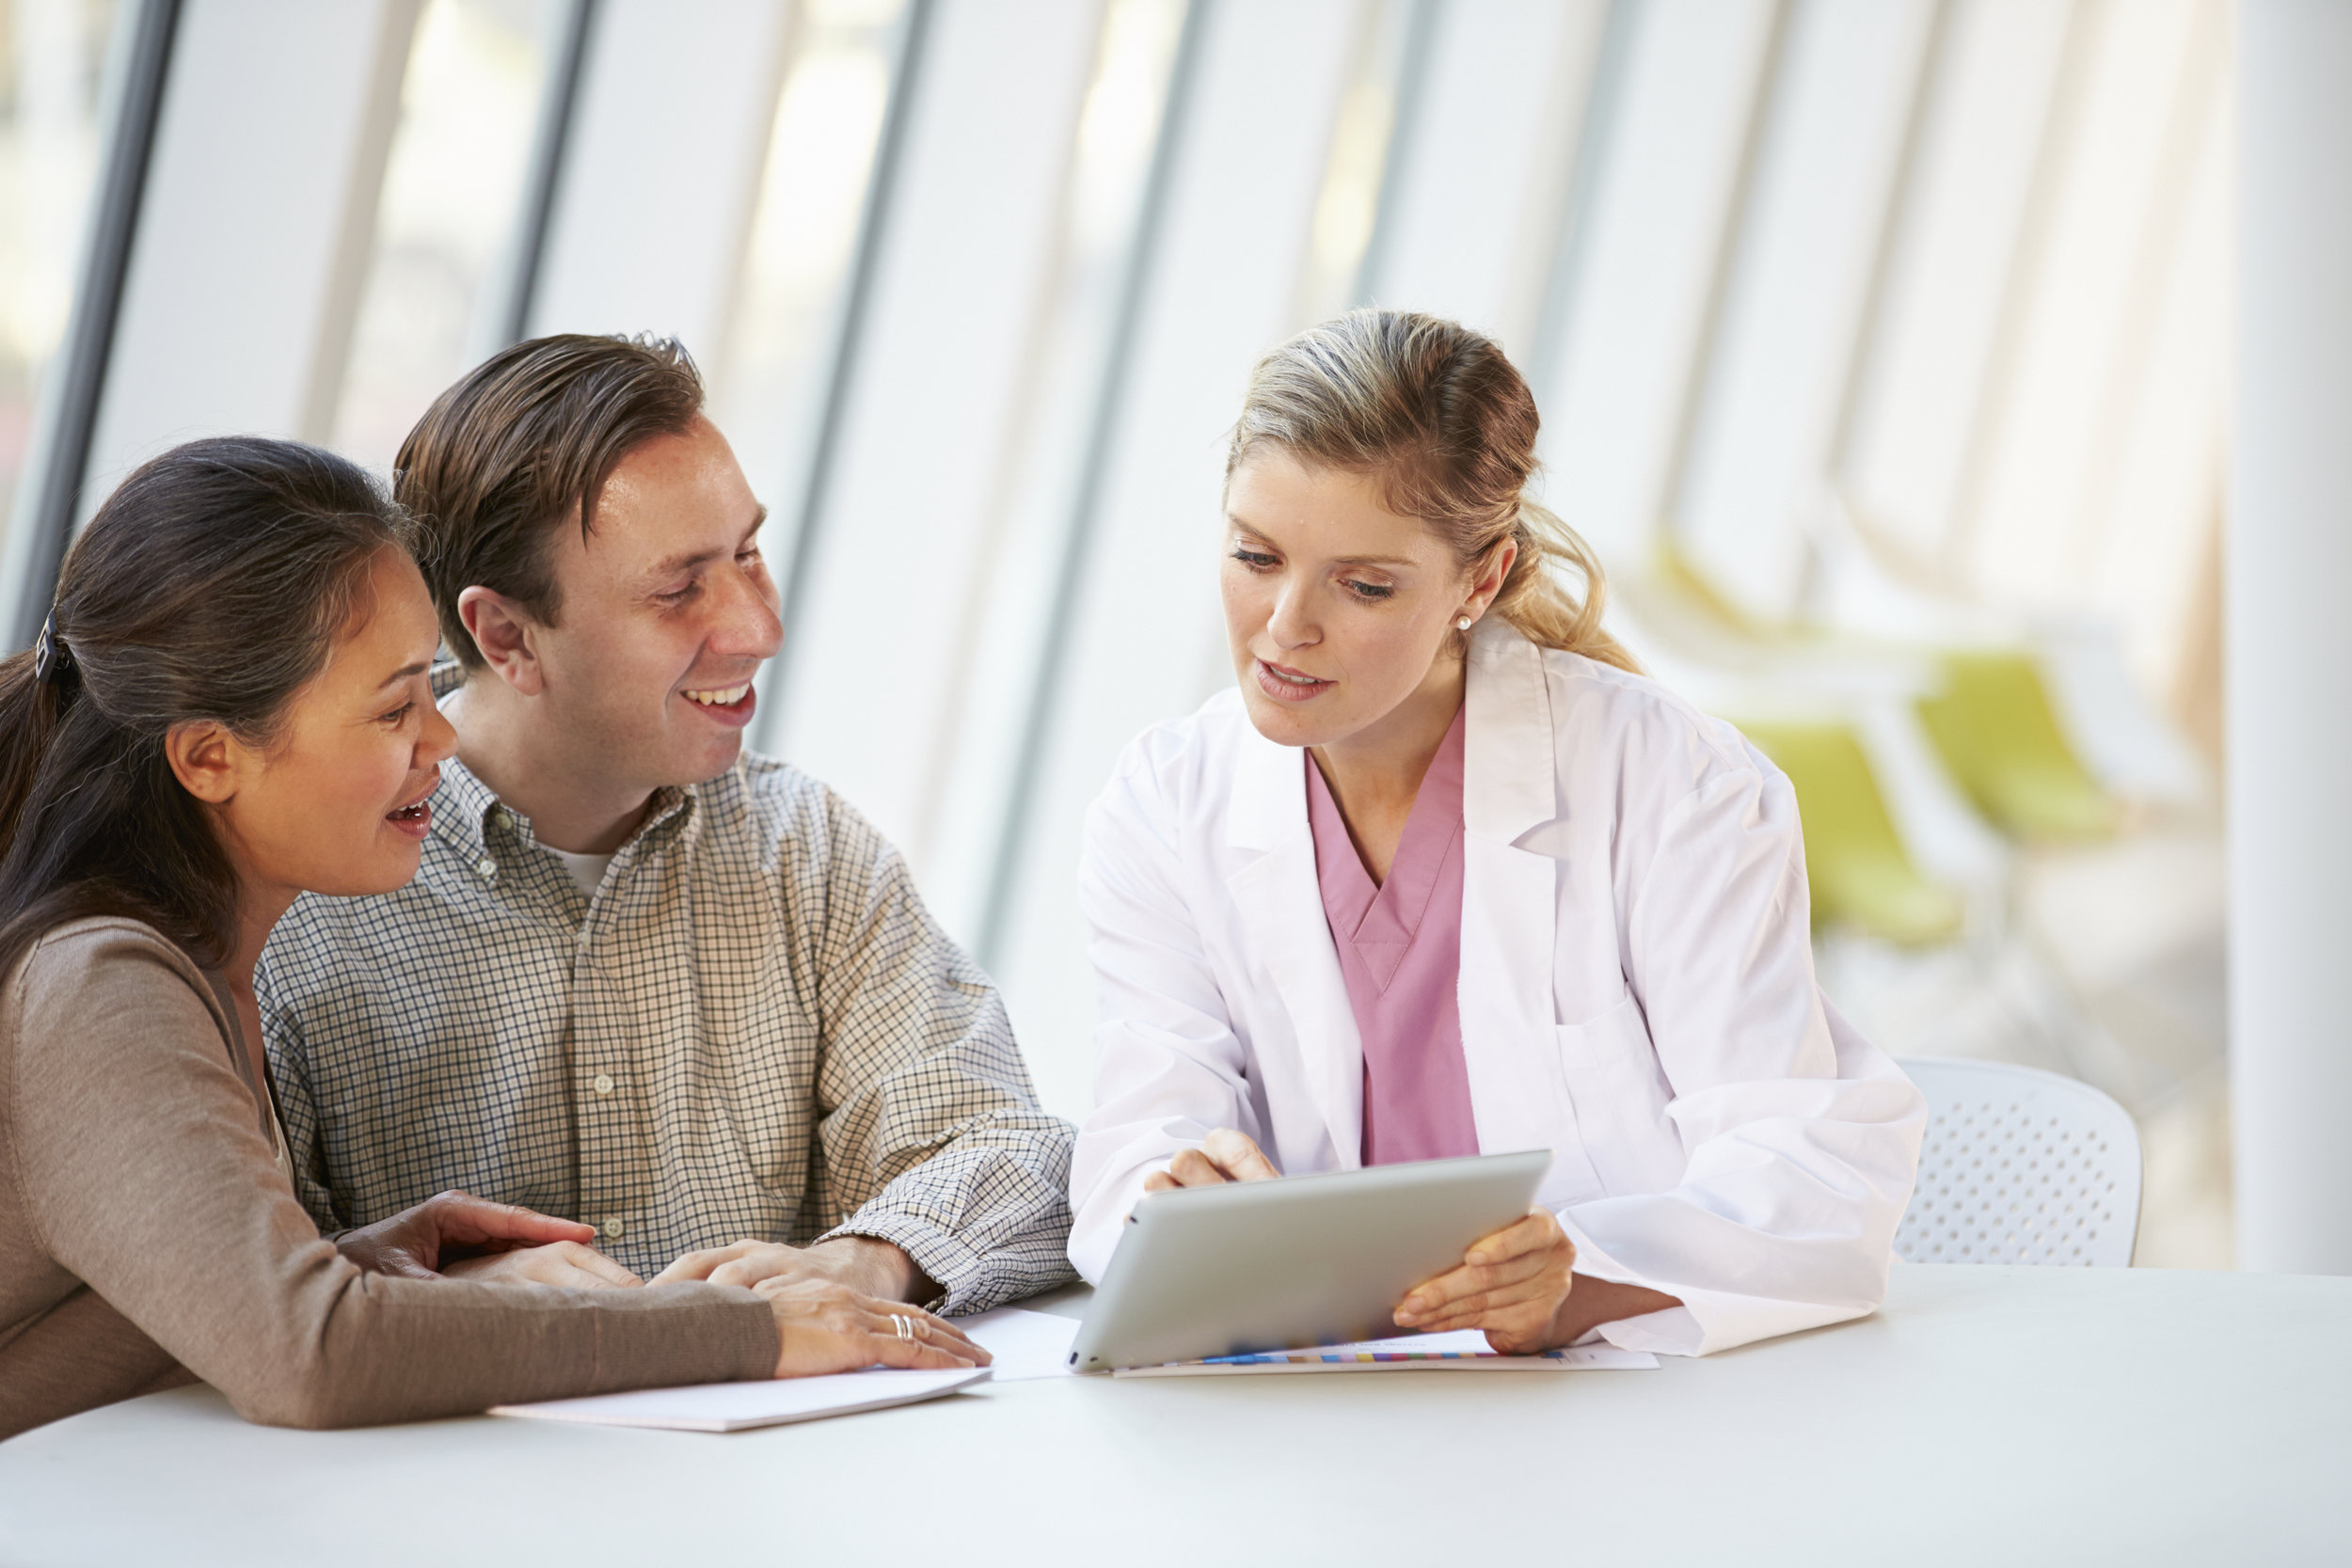 Female-Doctor-Using-Digital-Tablet-Talking-With-Patients-000022796590_Double.jpg